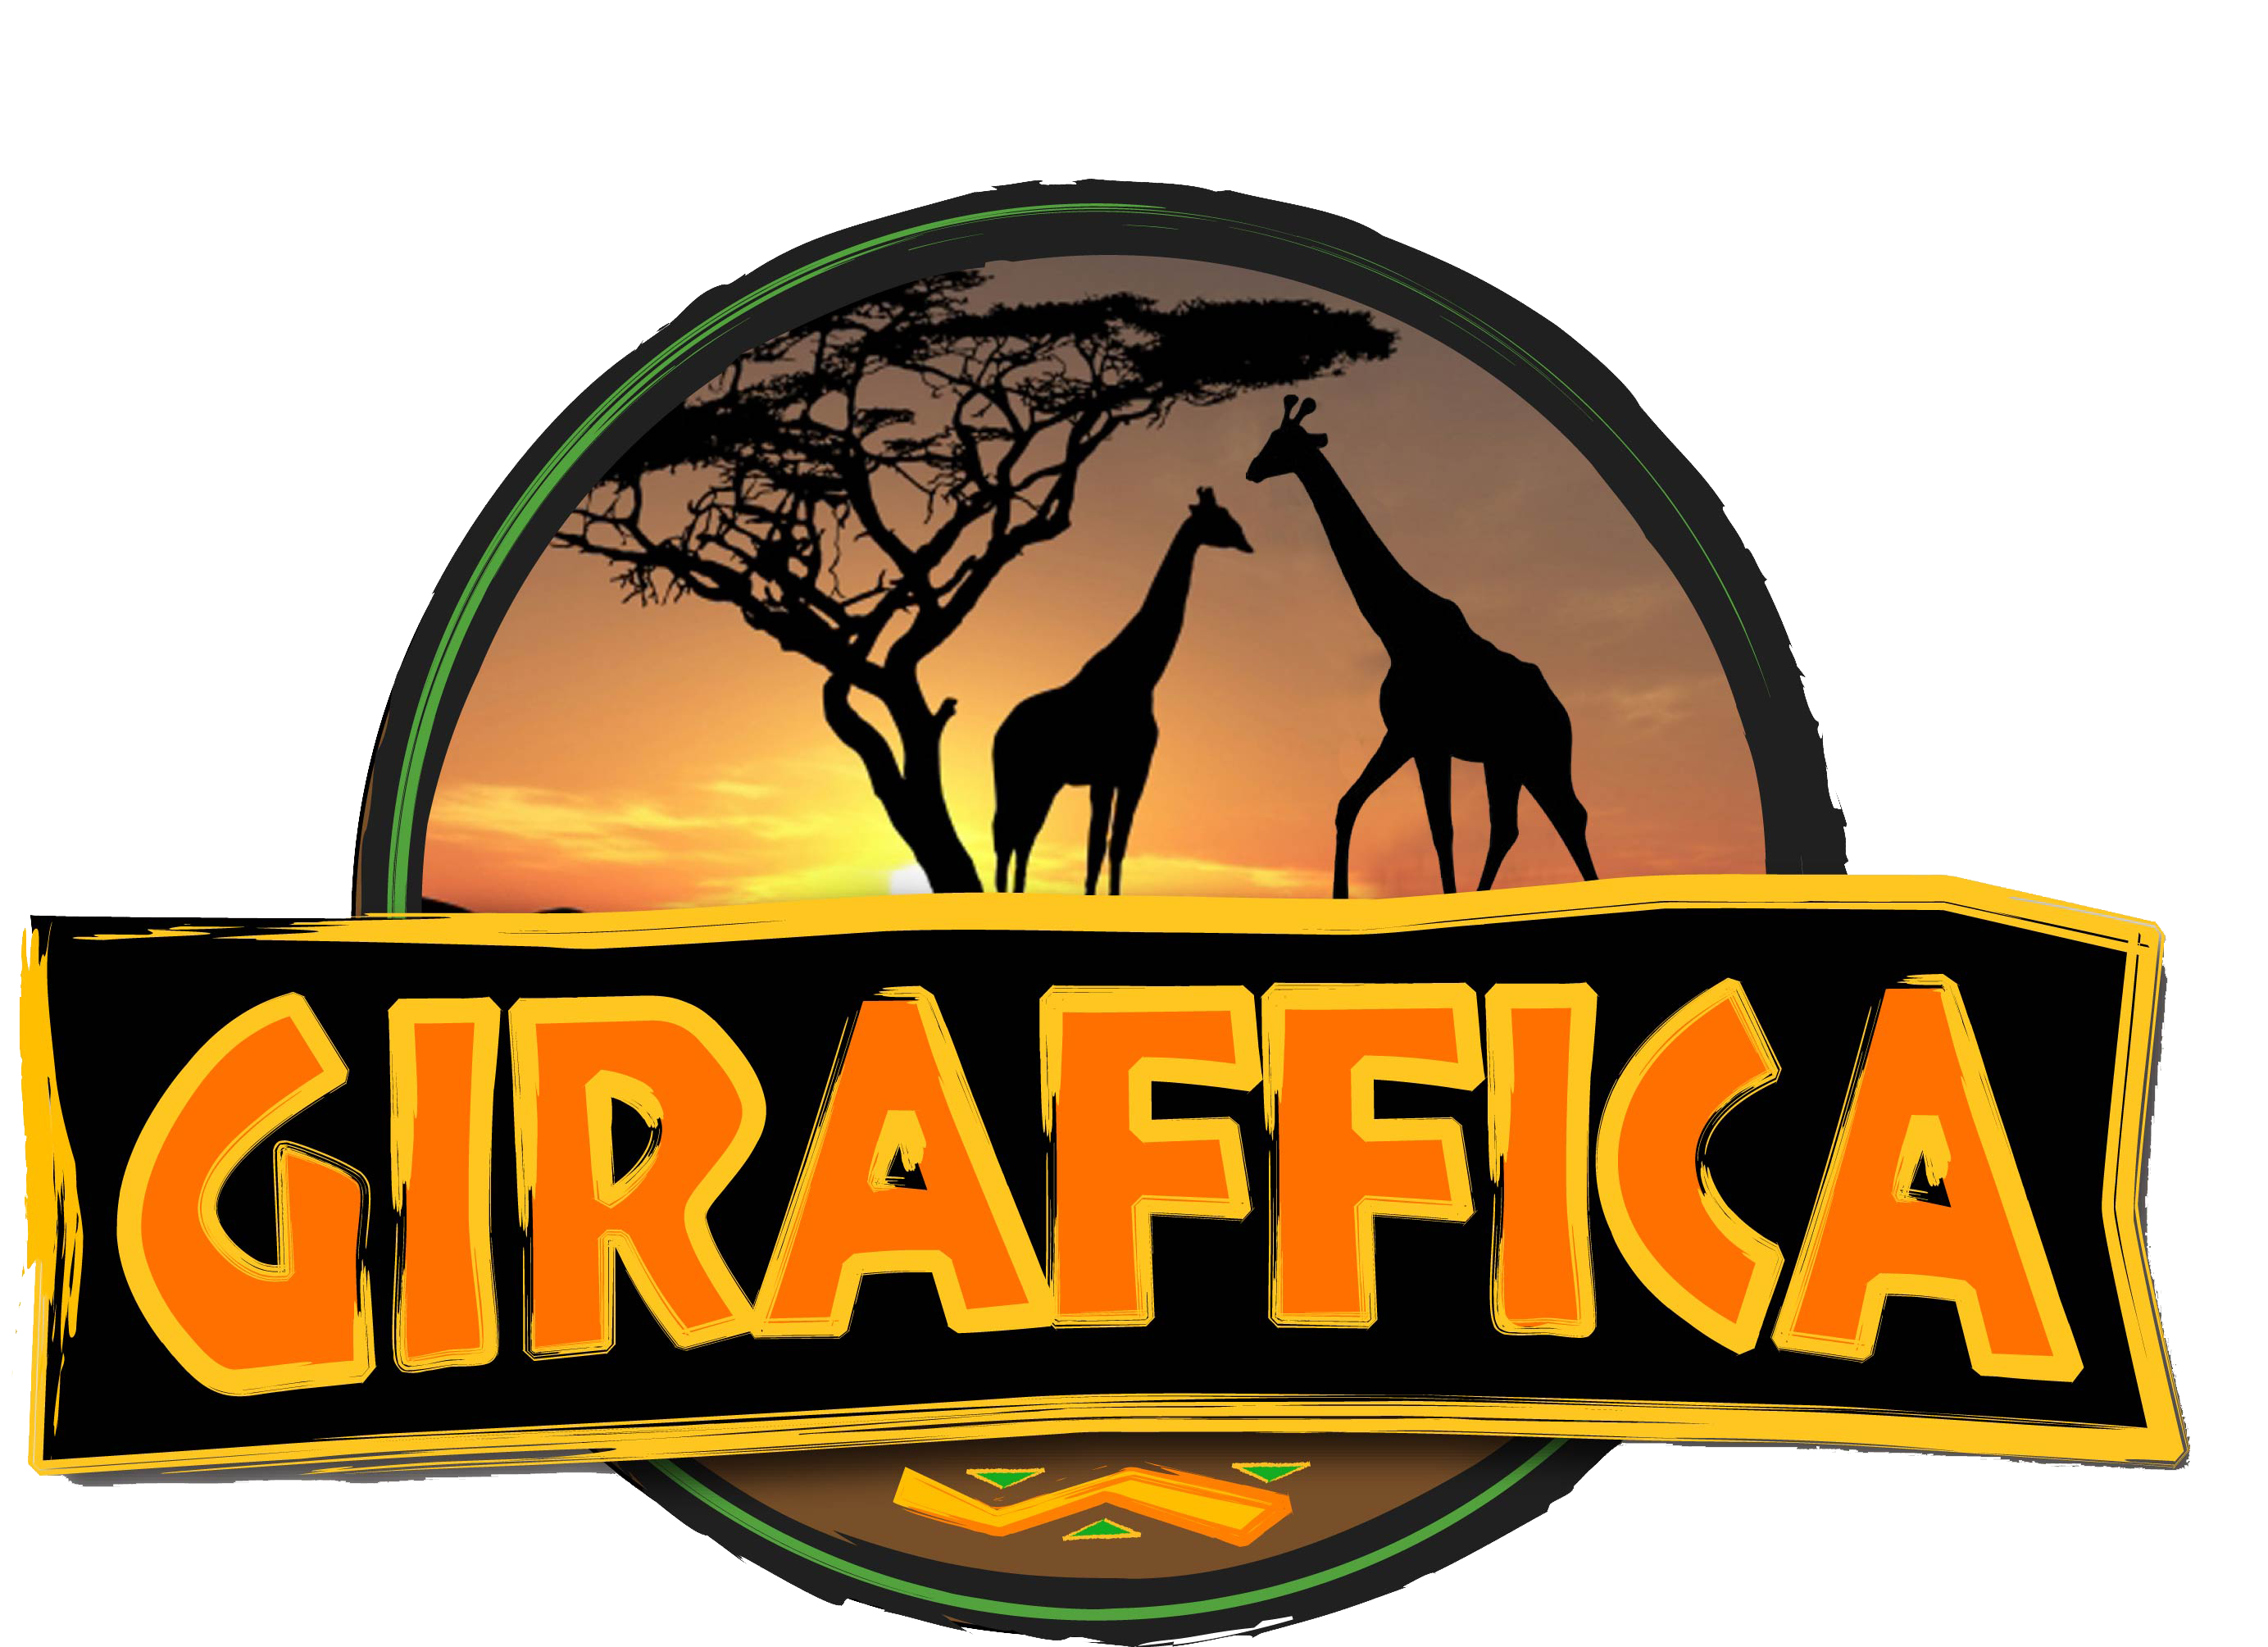 safari graffica logo #39675